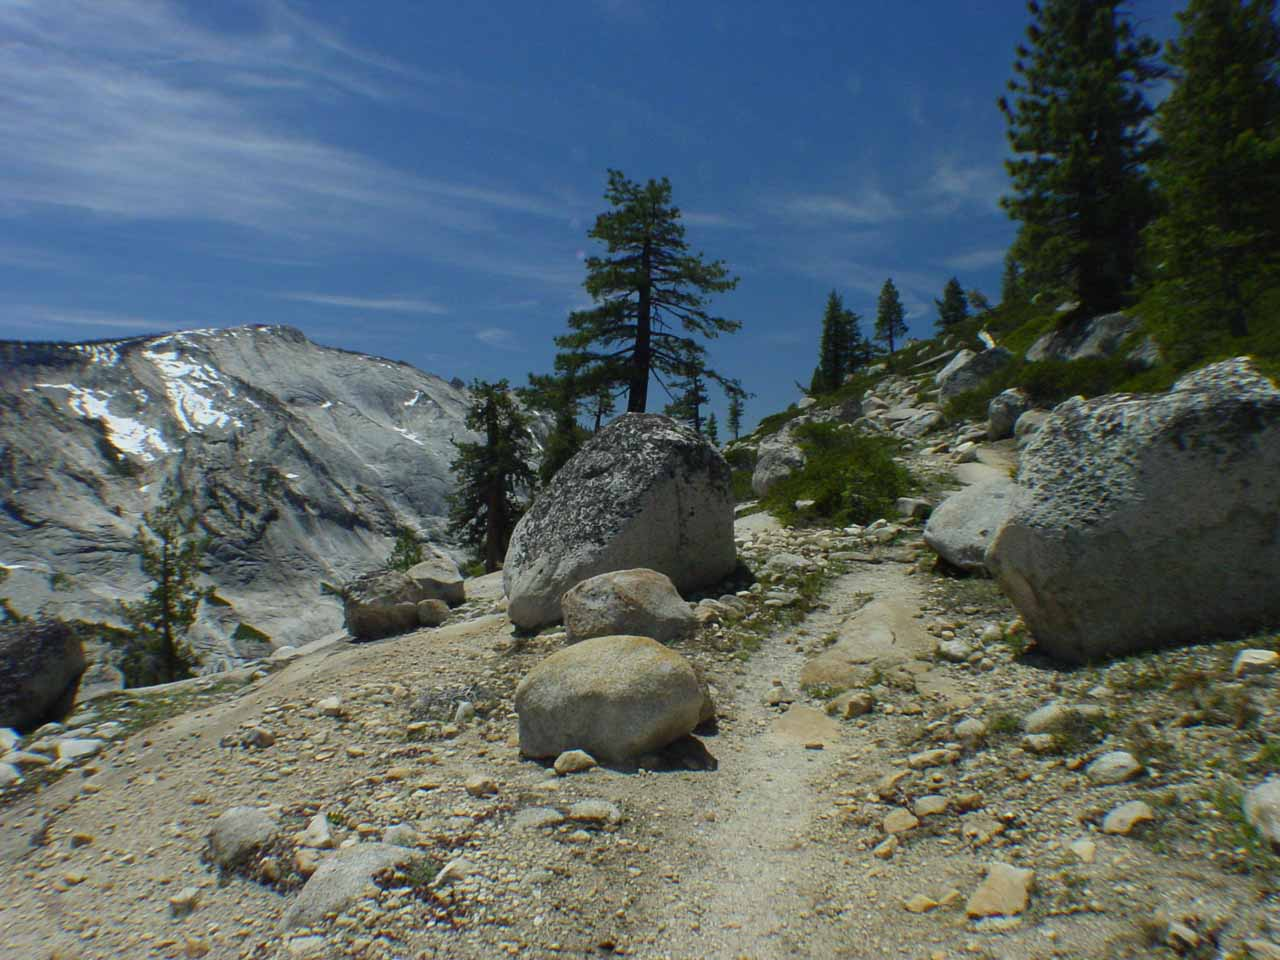 The trail narrowed and started to climb briefly as it started to get more exposed to the sun